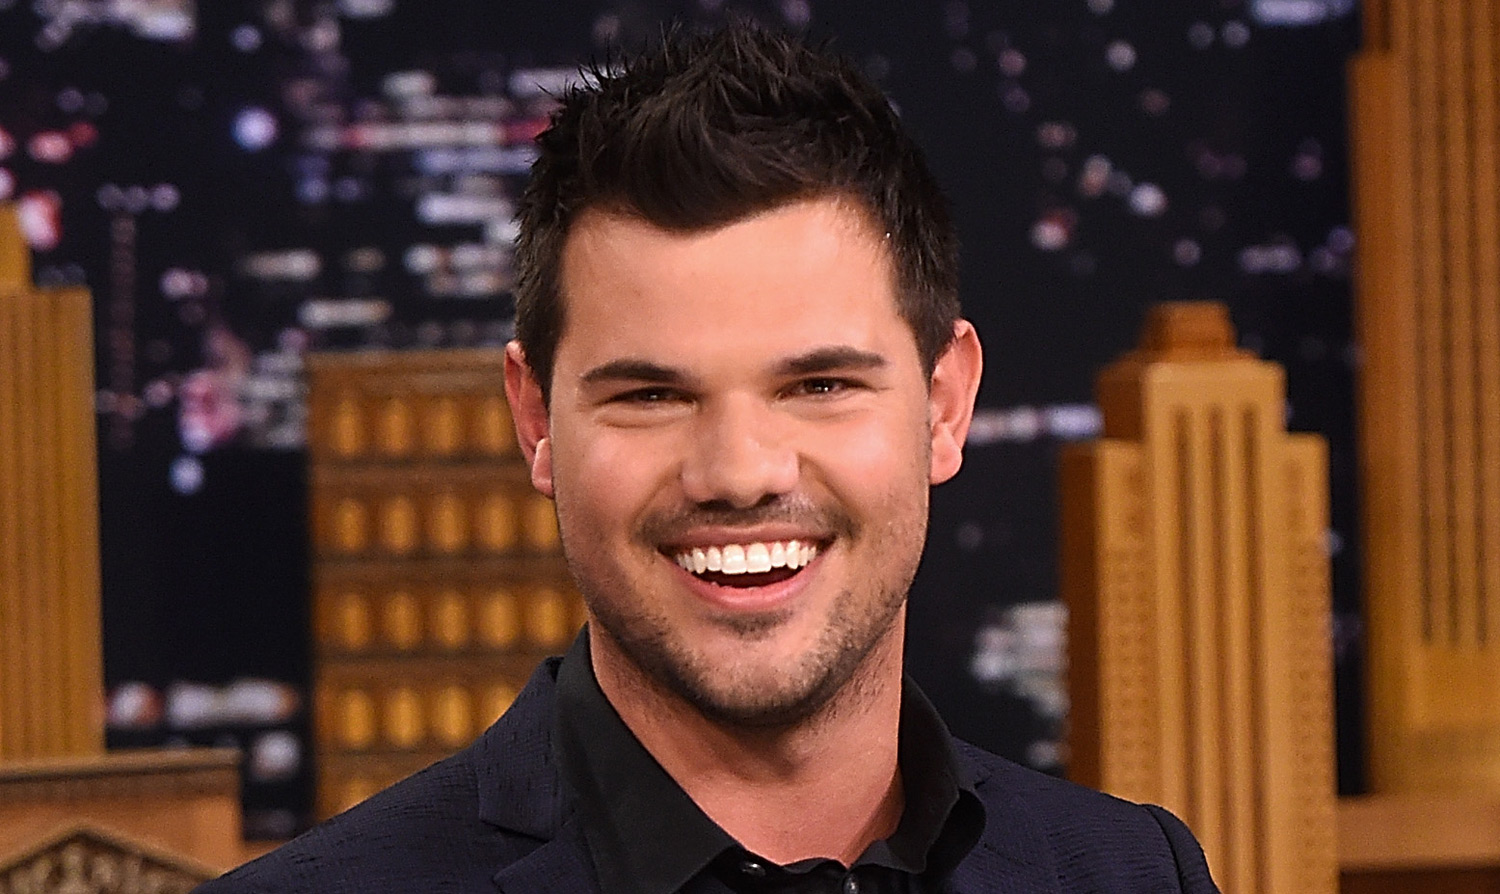 Taylor Lautner Offers Up Ex Taylor Swift's Phone Number in First ... Taylor Lautner